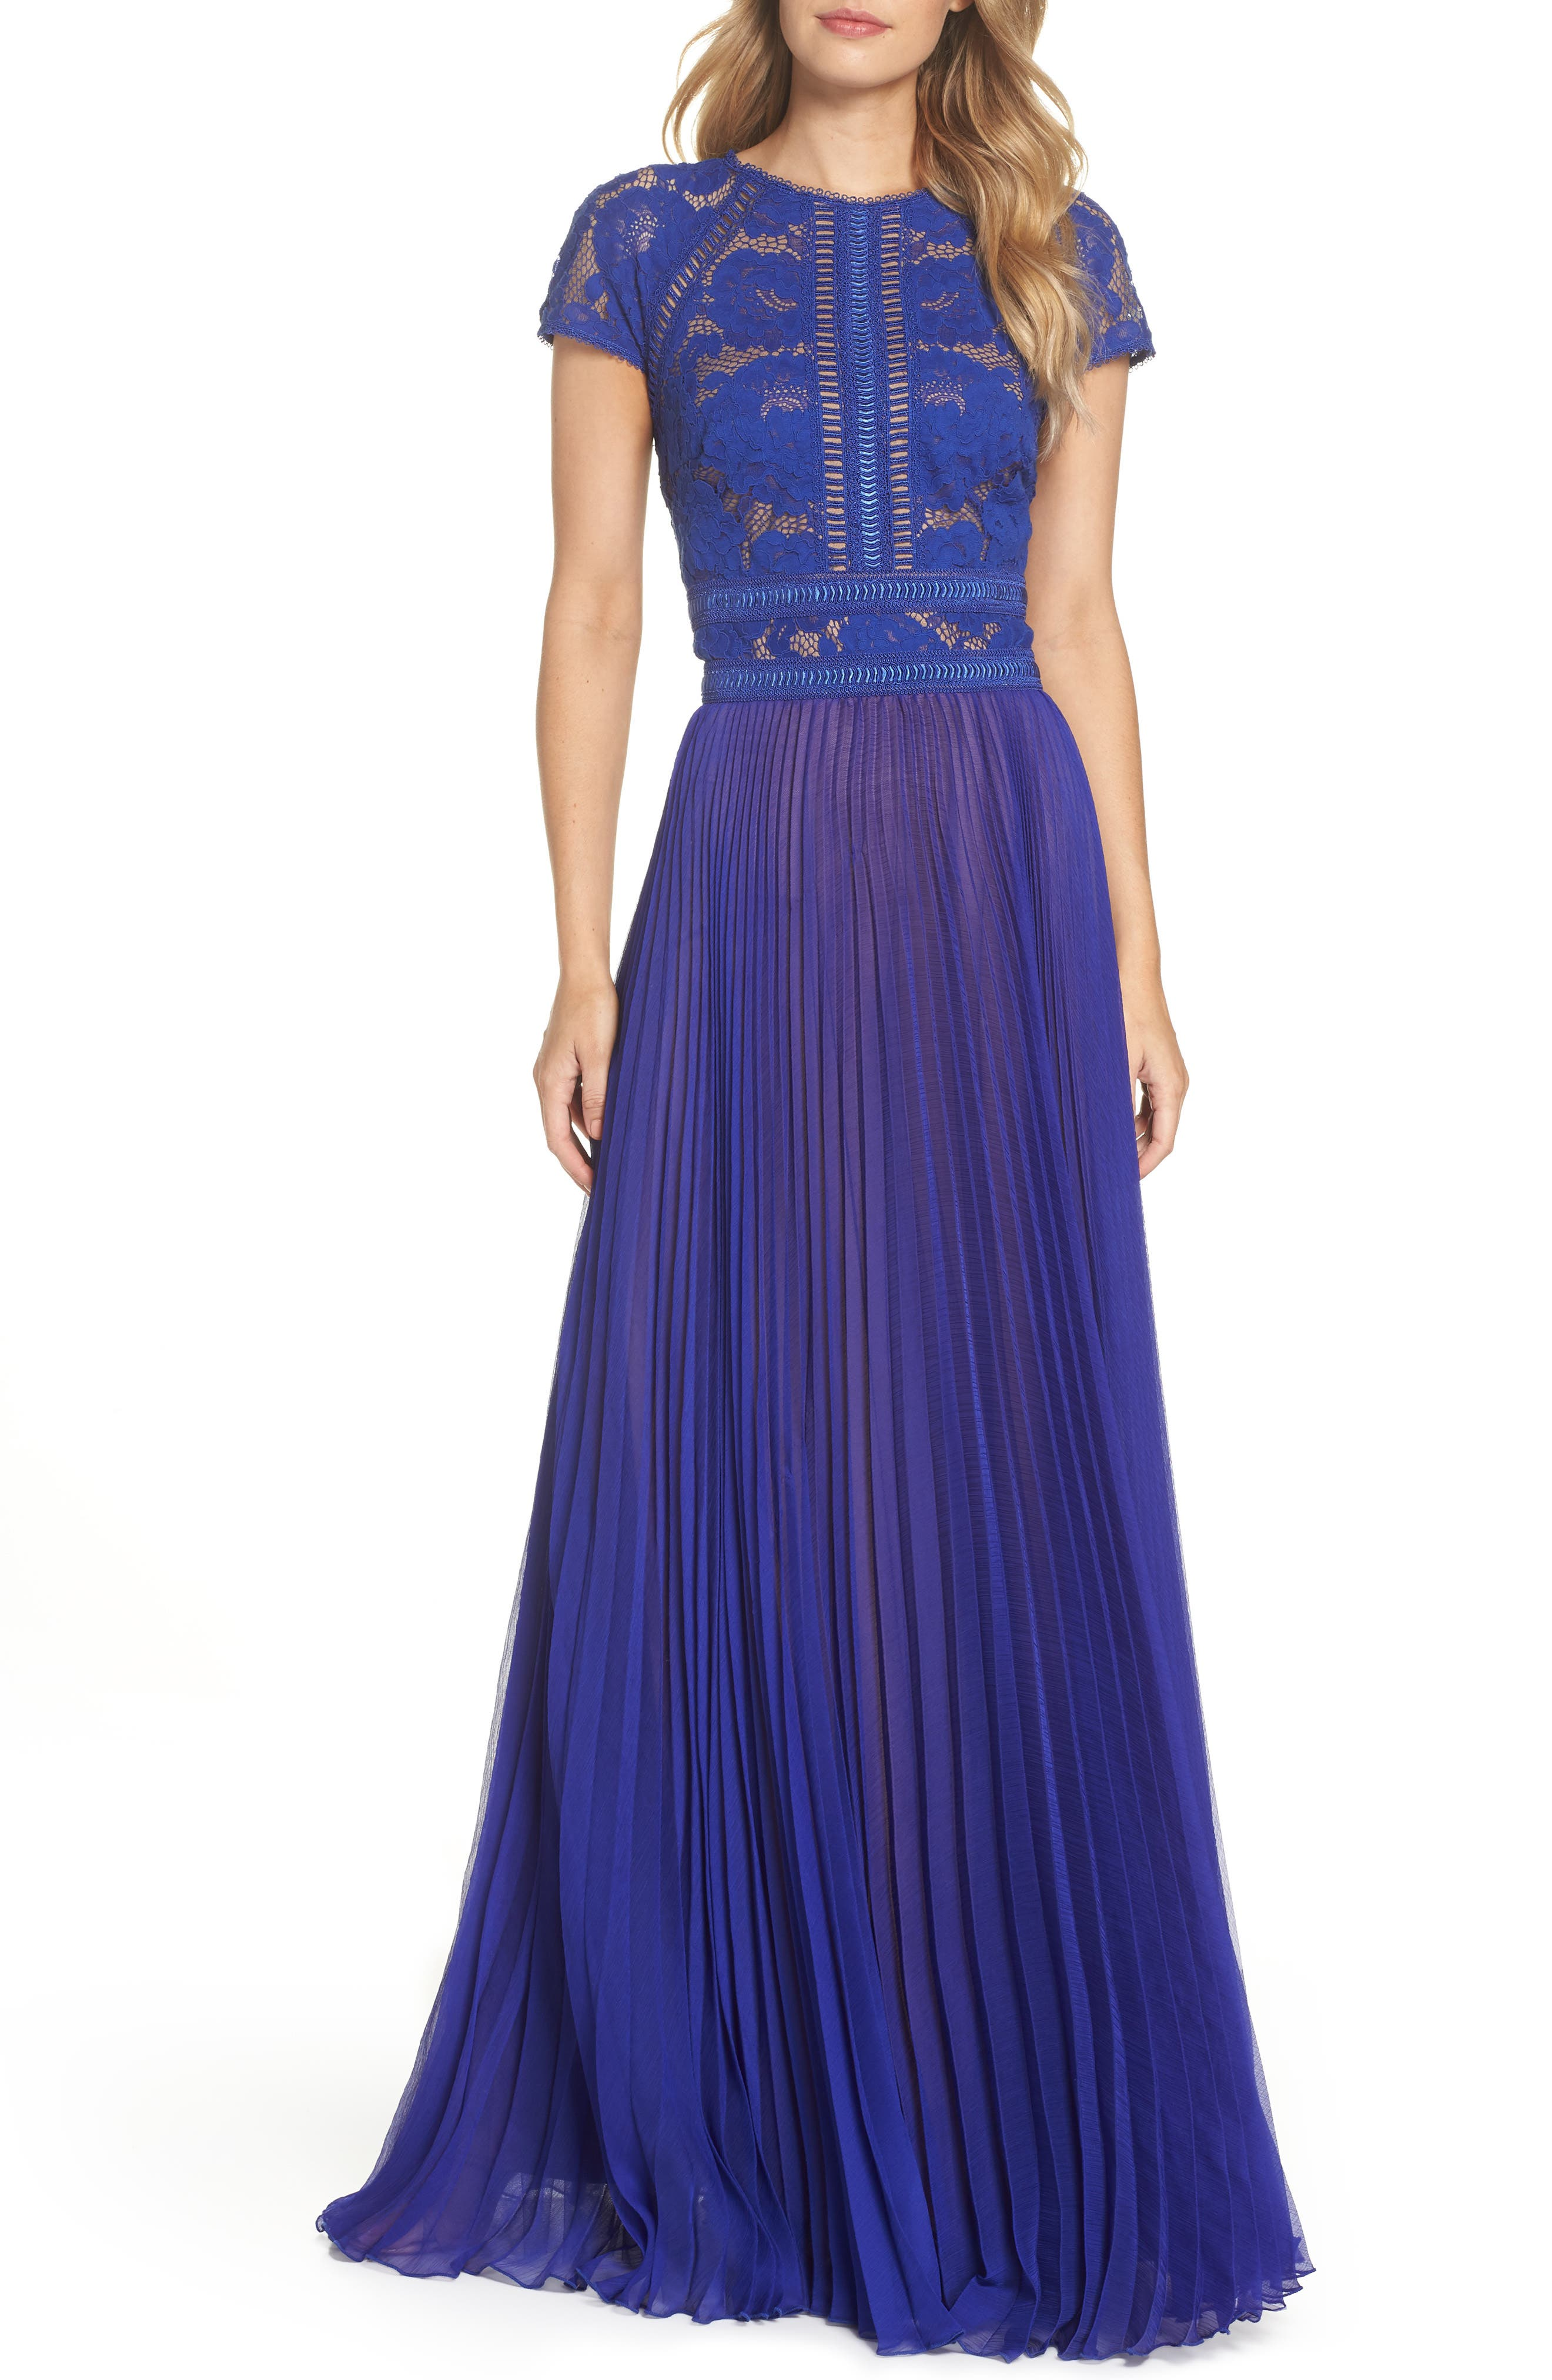 Lace & Chiffon A-Line Gown,                             Main thumbnail 1, color,                             490